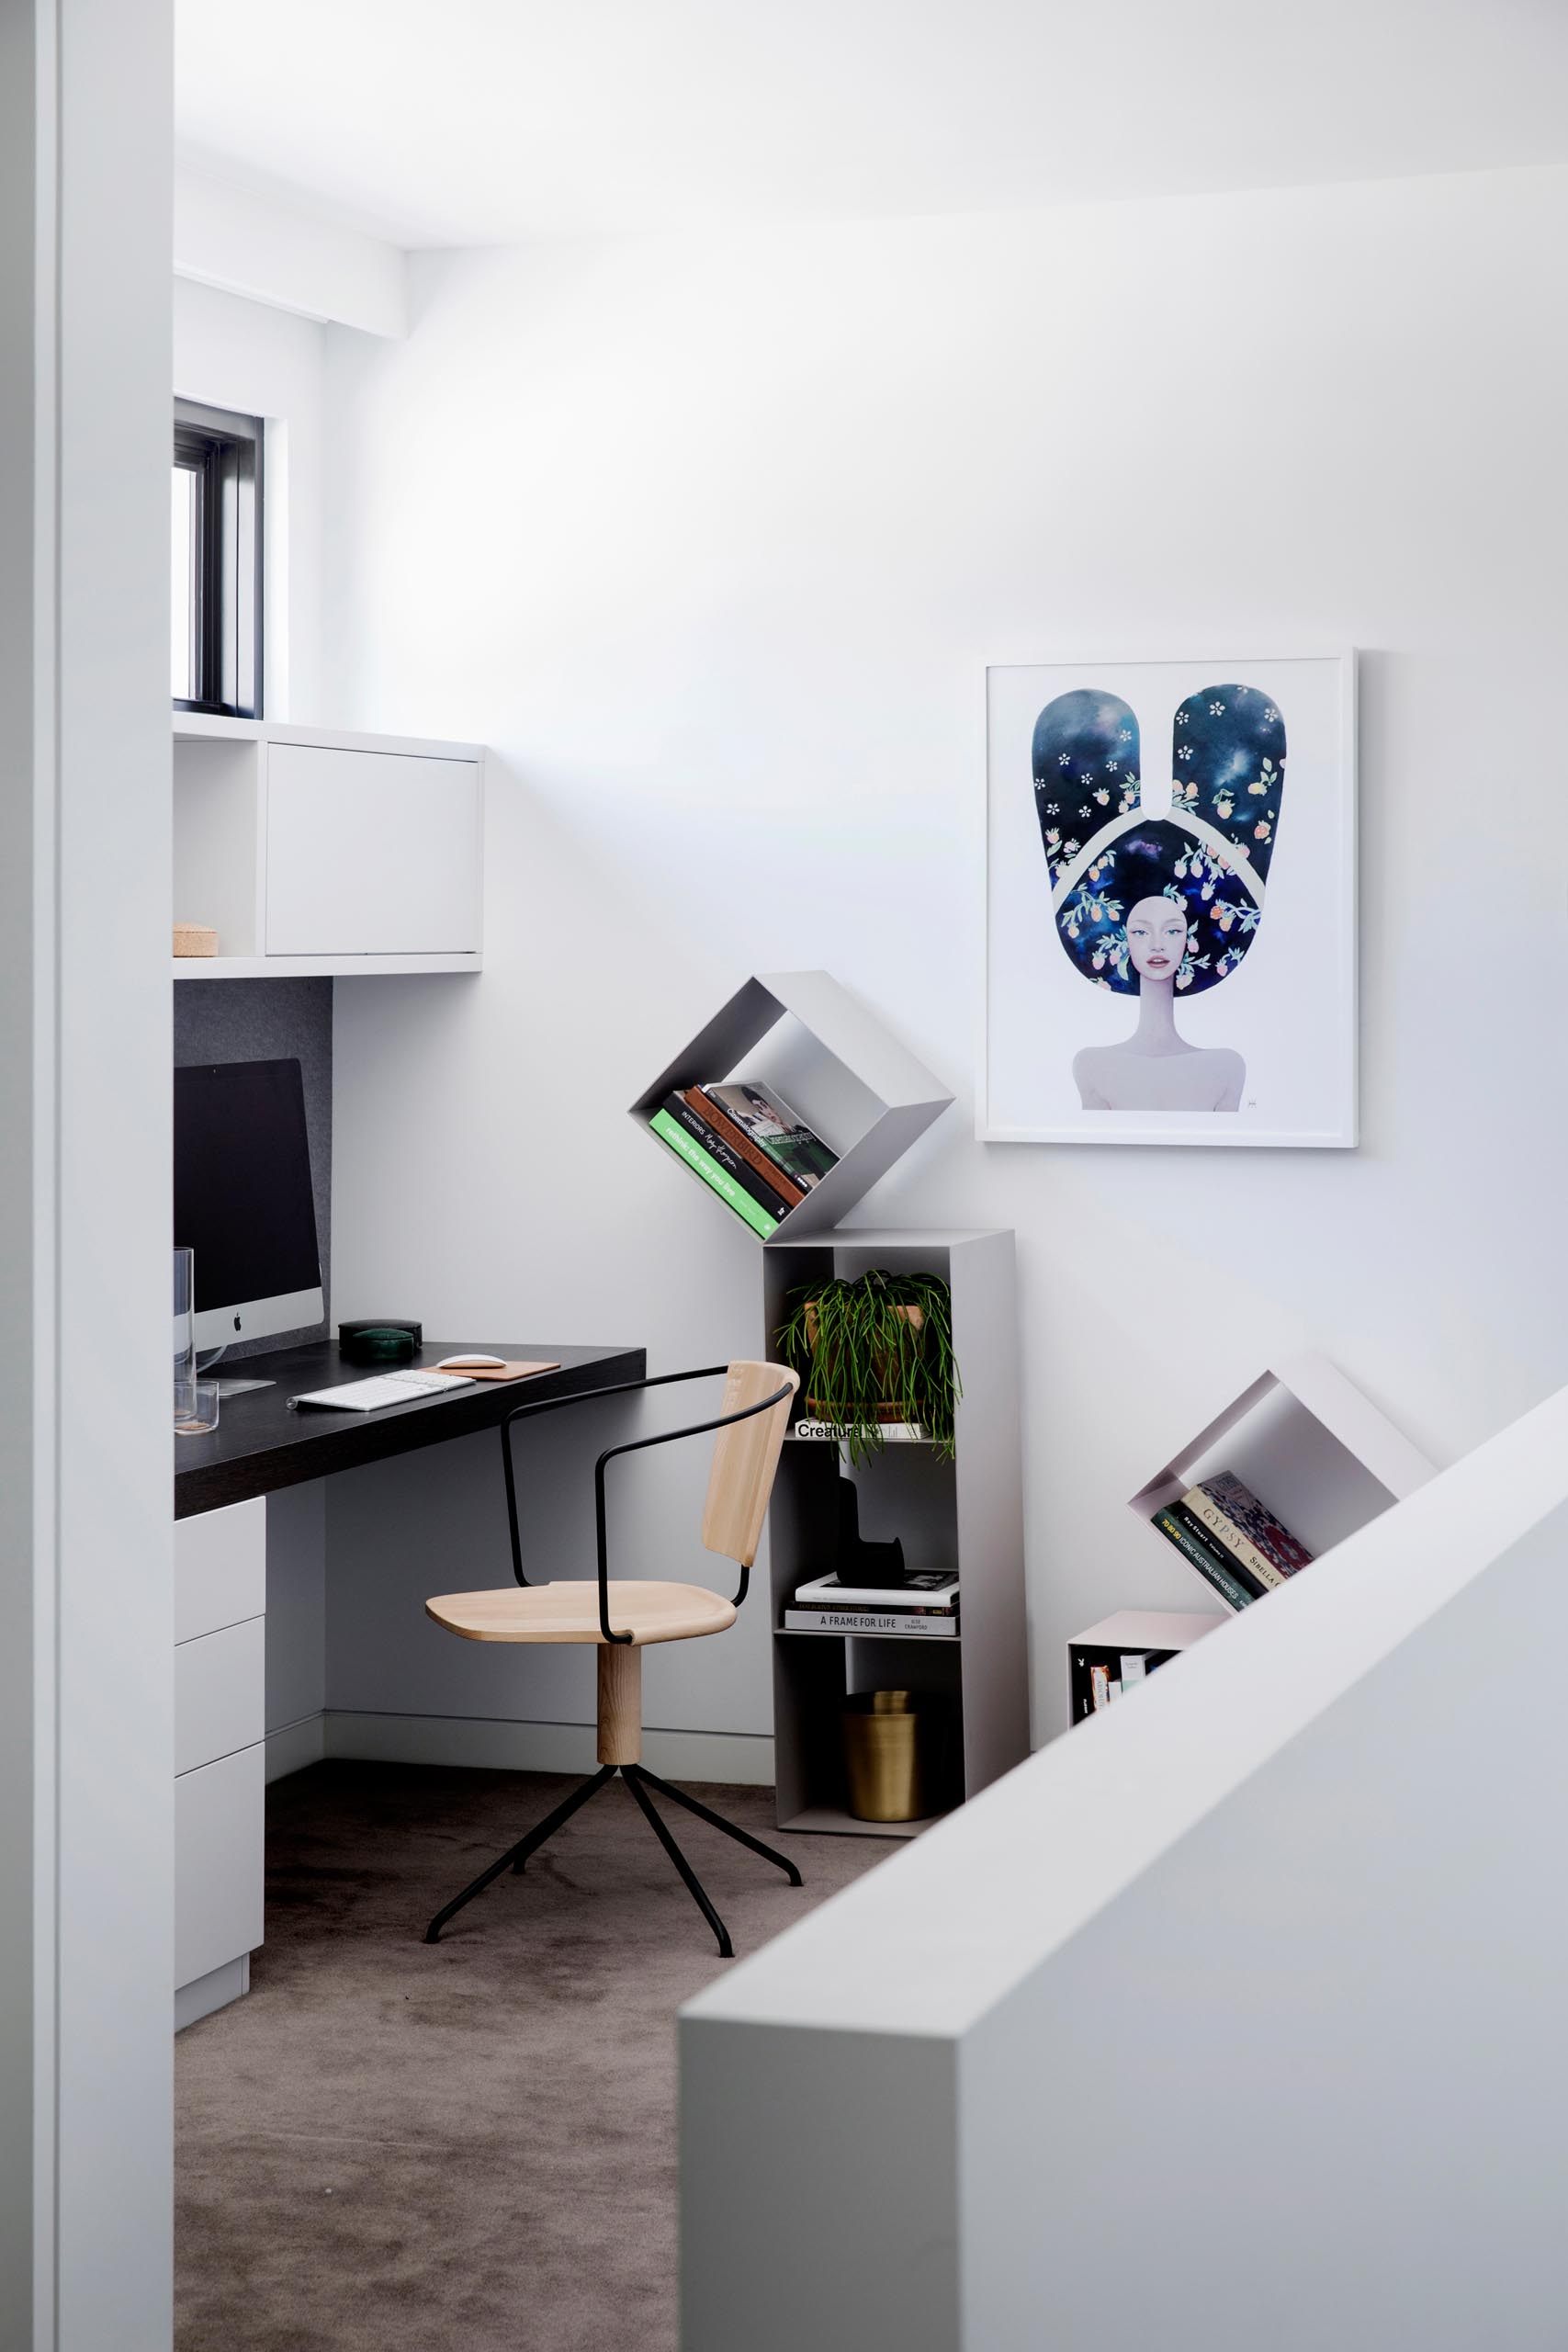 A home office nook with a custom desk and cabinets, and freestanding bookshelves.